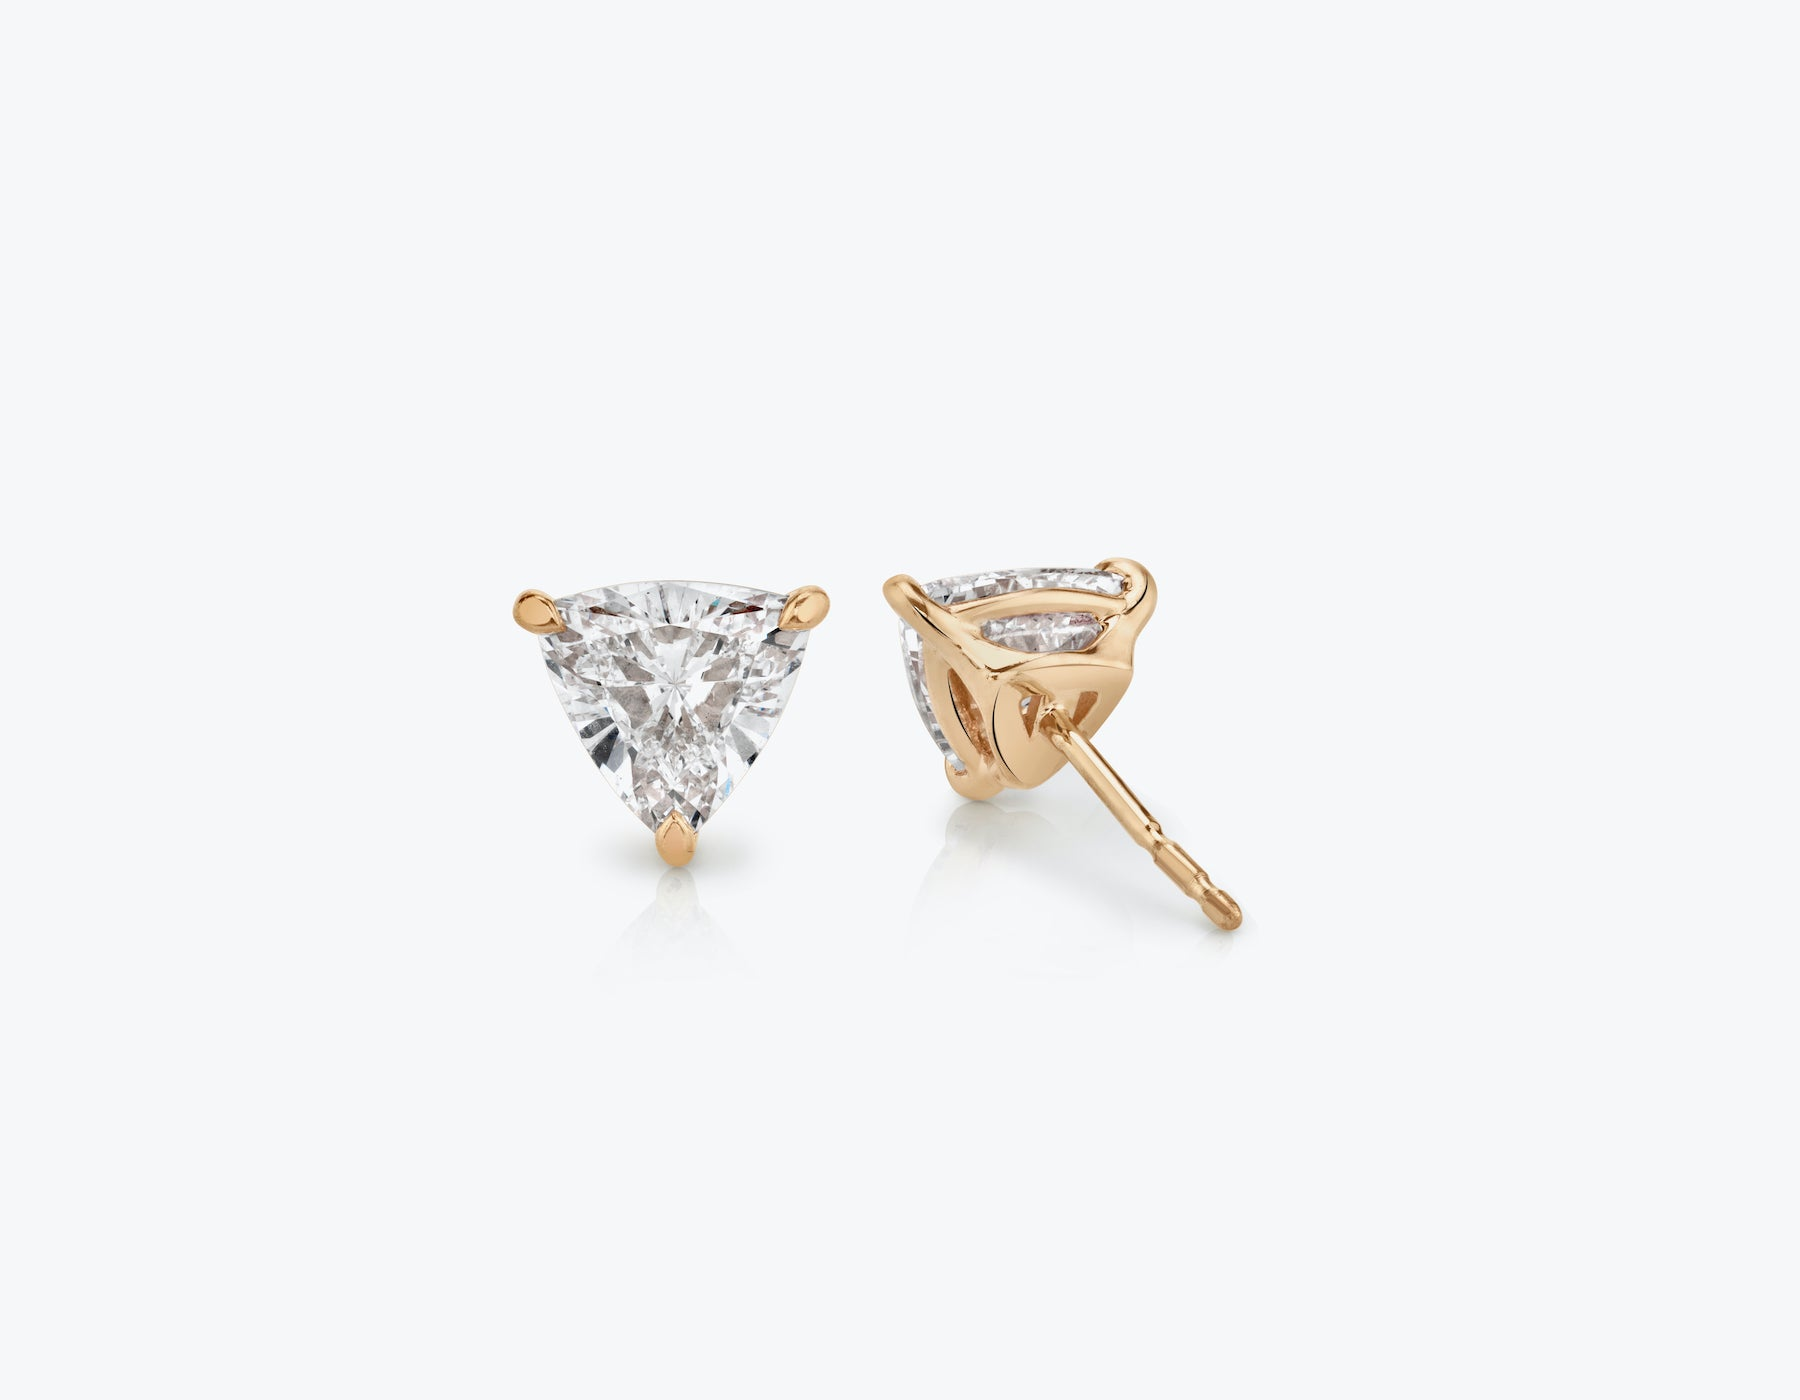 Vrai 14k solid gold Solitaire Trillion Diamond Studs sustainably created triangle diamonds prong set earrings back view, 14K Rose Gold